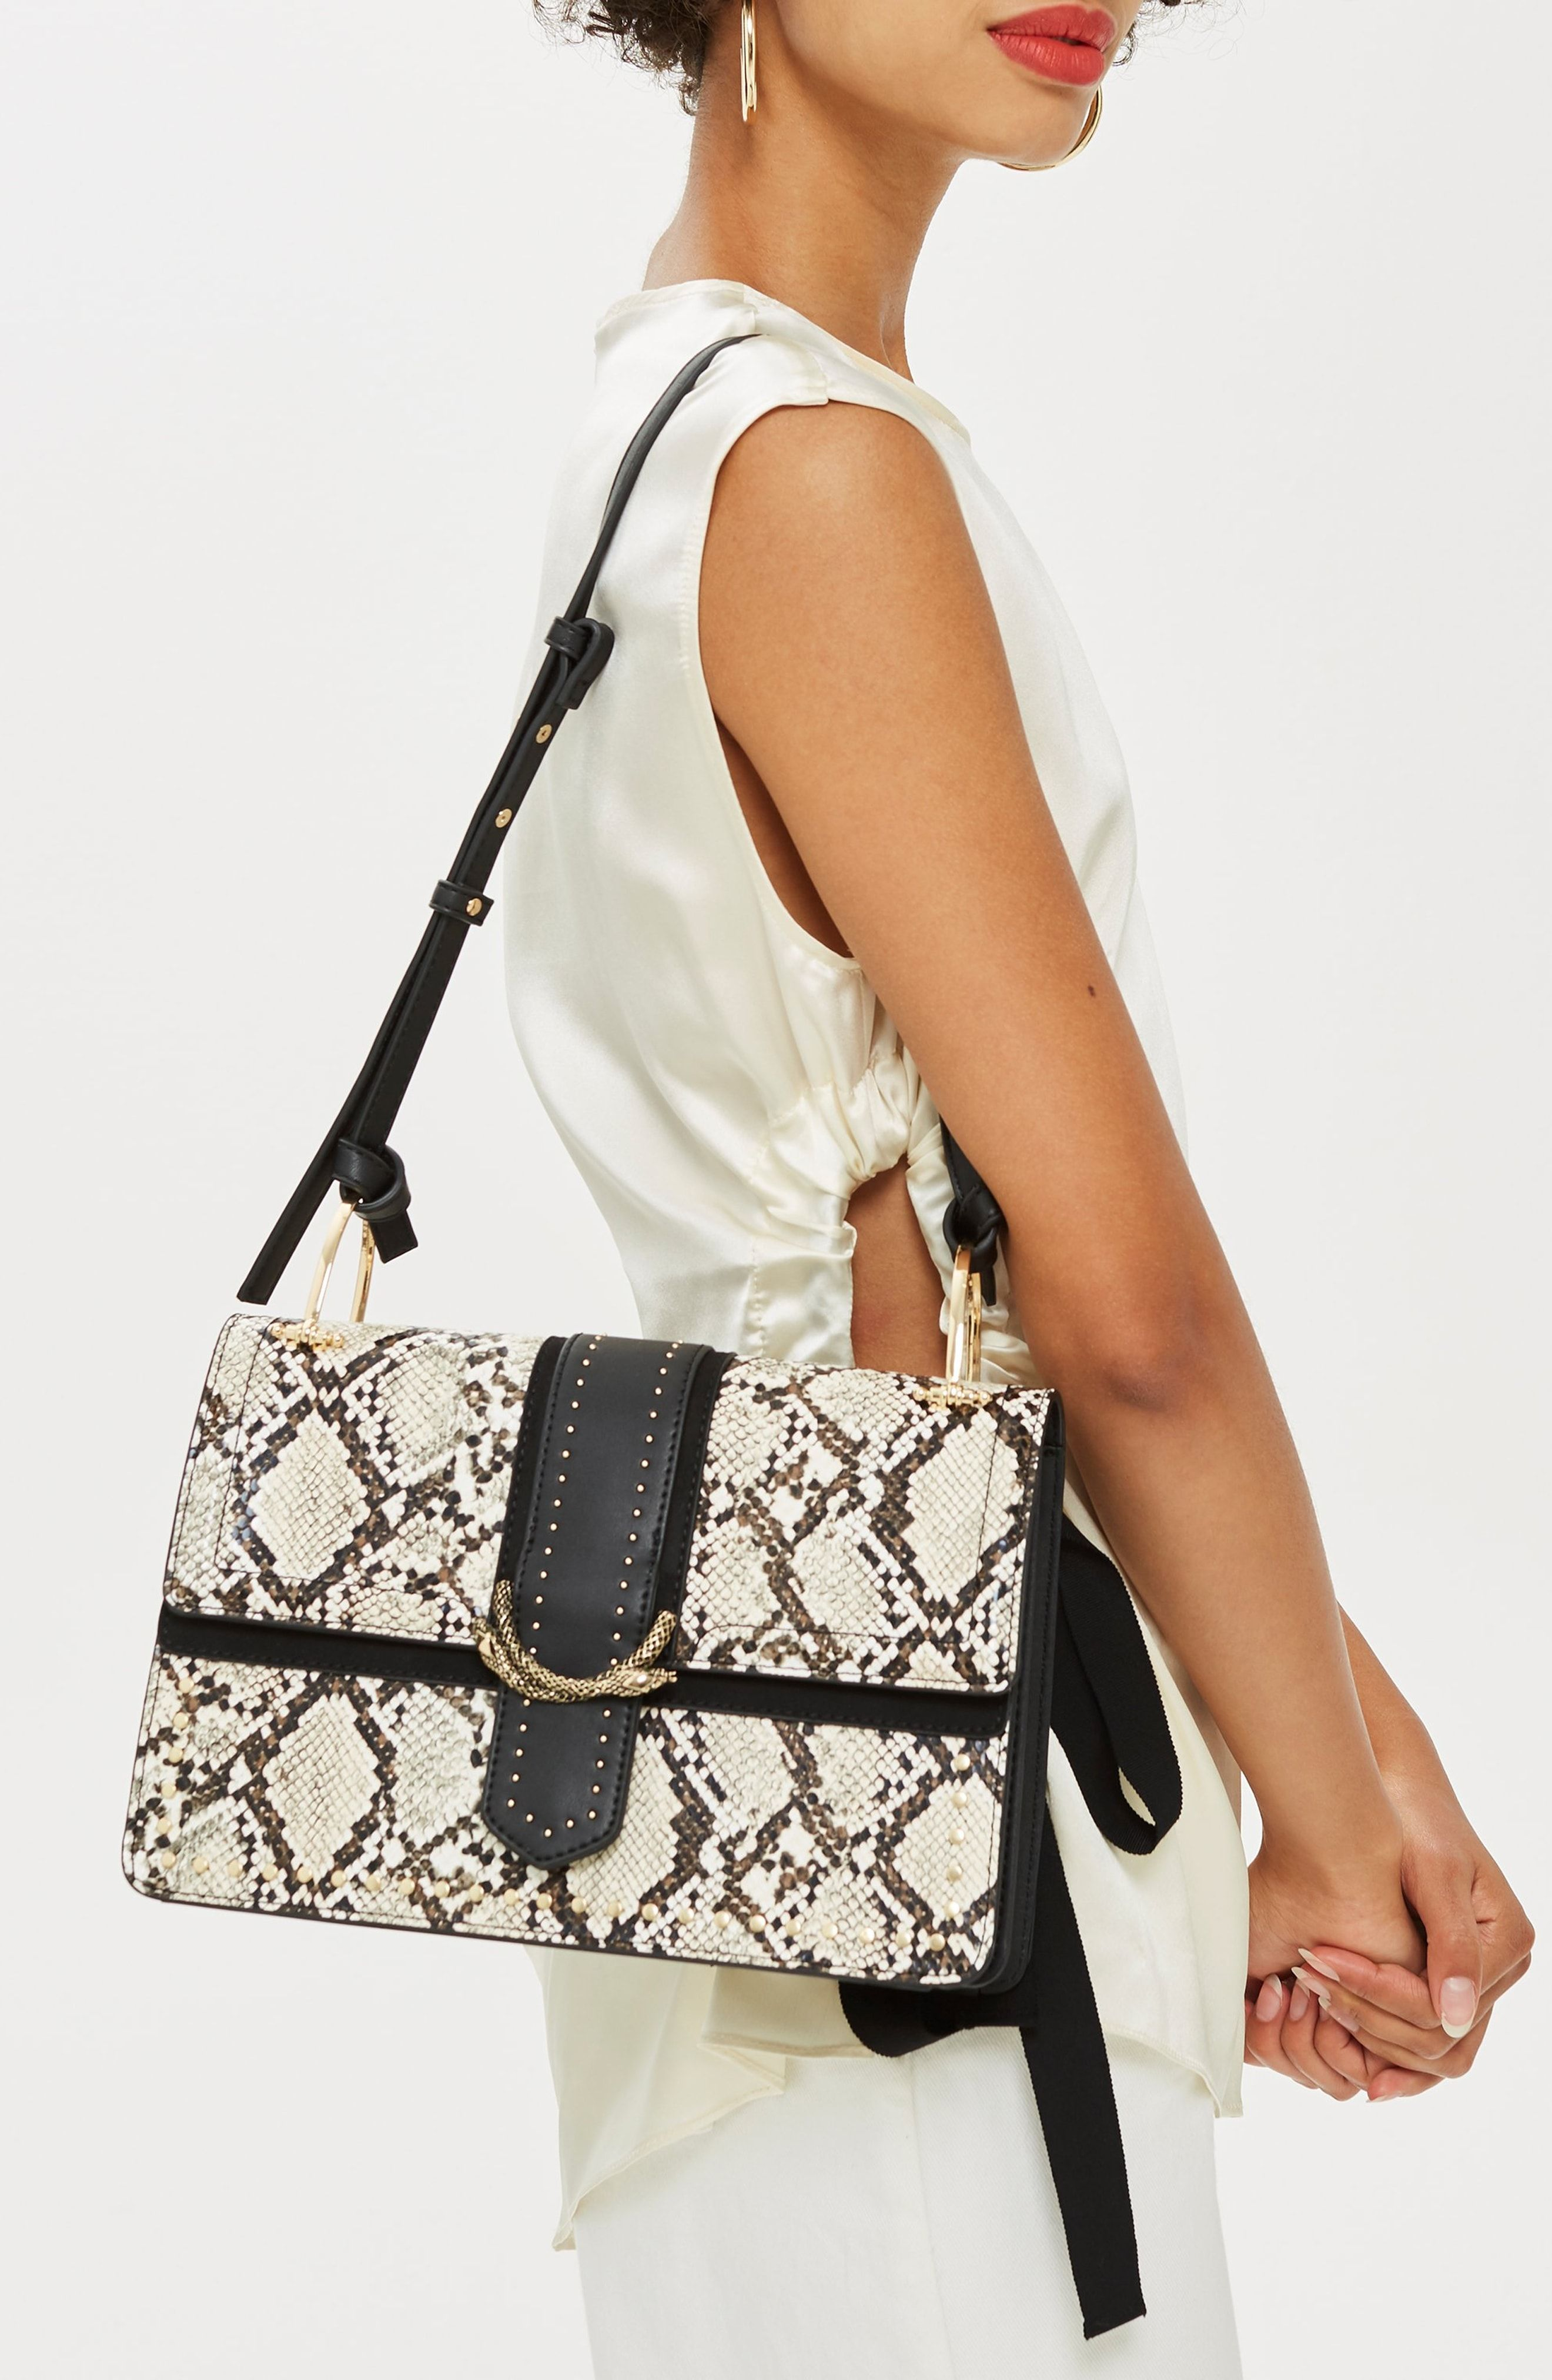 cheap prices authorized site newest collection Suri Snake Effect Shoulder Bag | Shoulder bag, Bags, Snake print boots